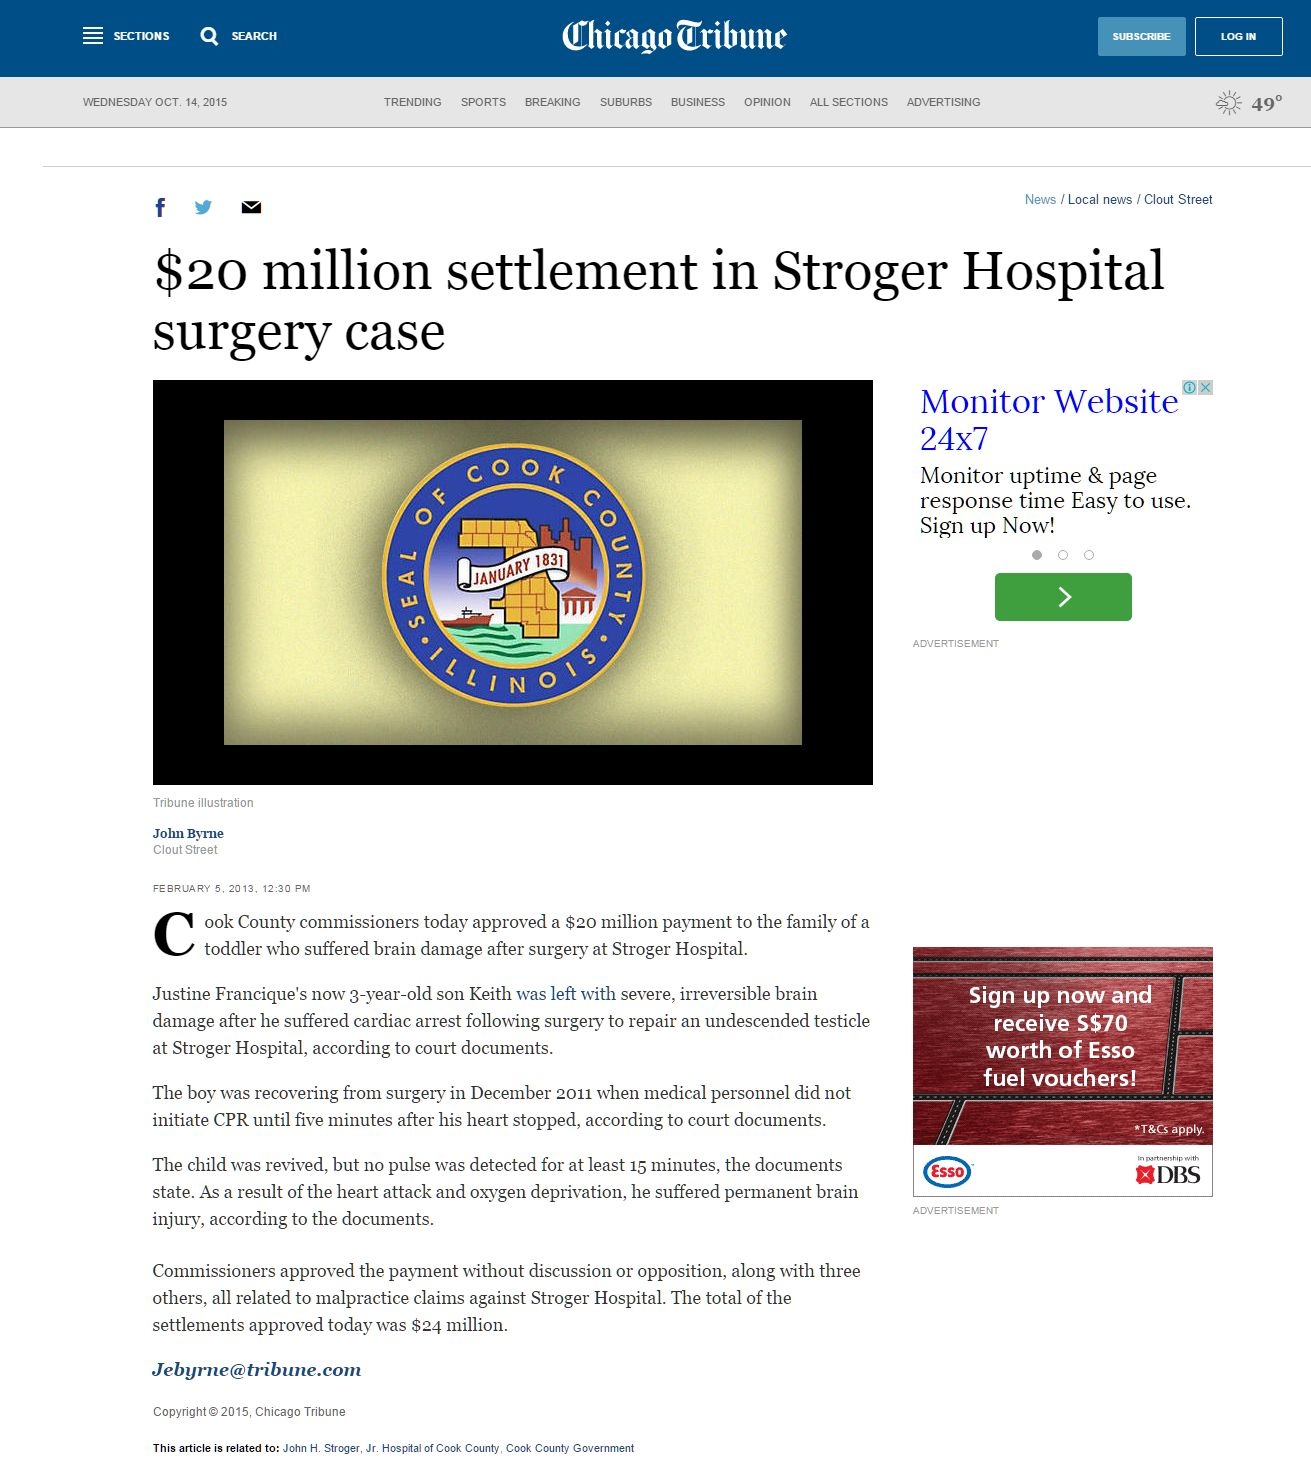 $20 million settlement in Stroger Hospital surgery case